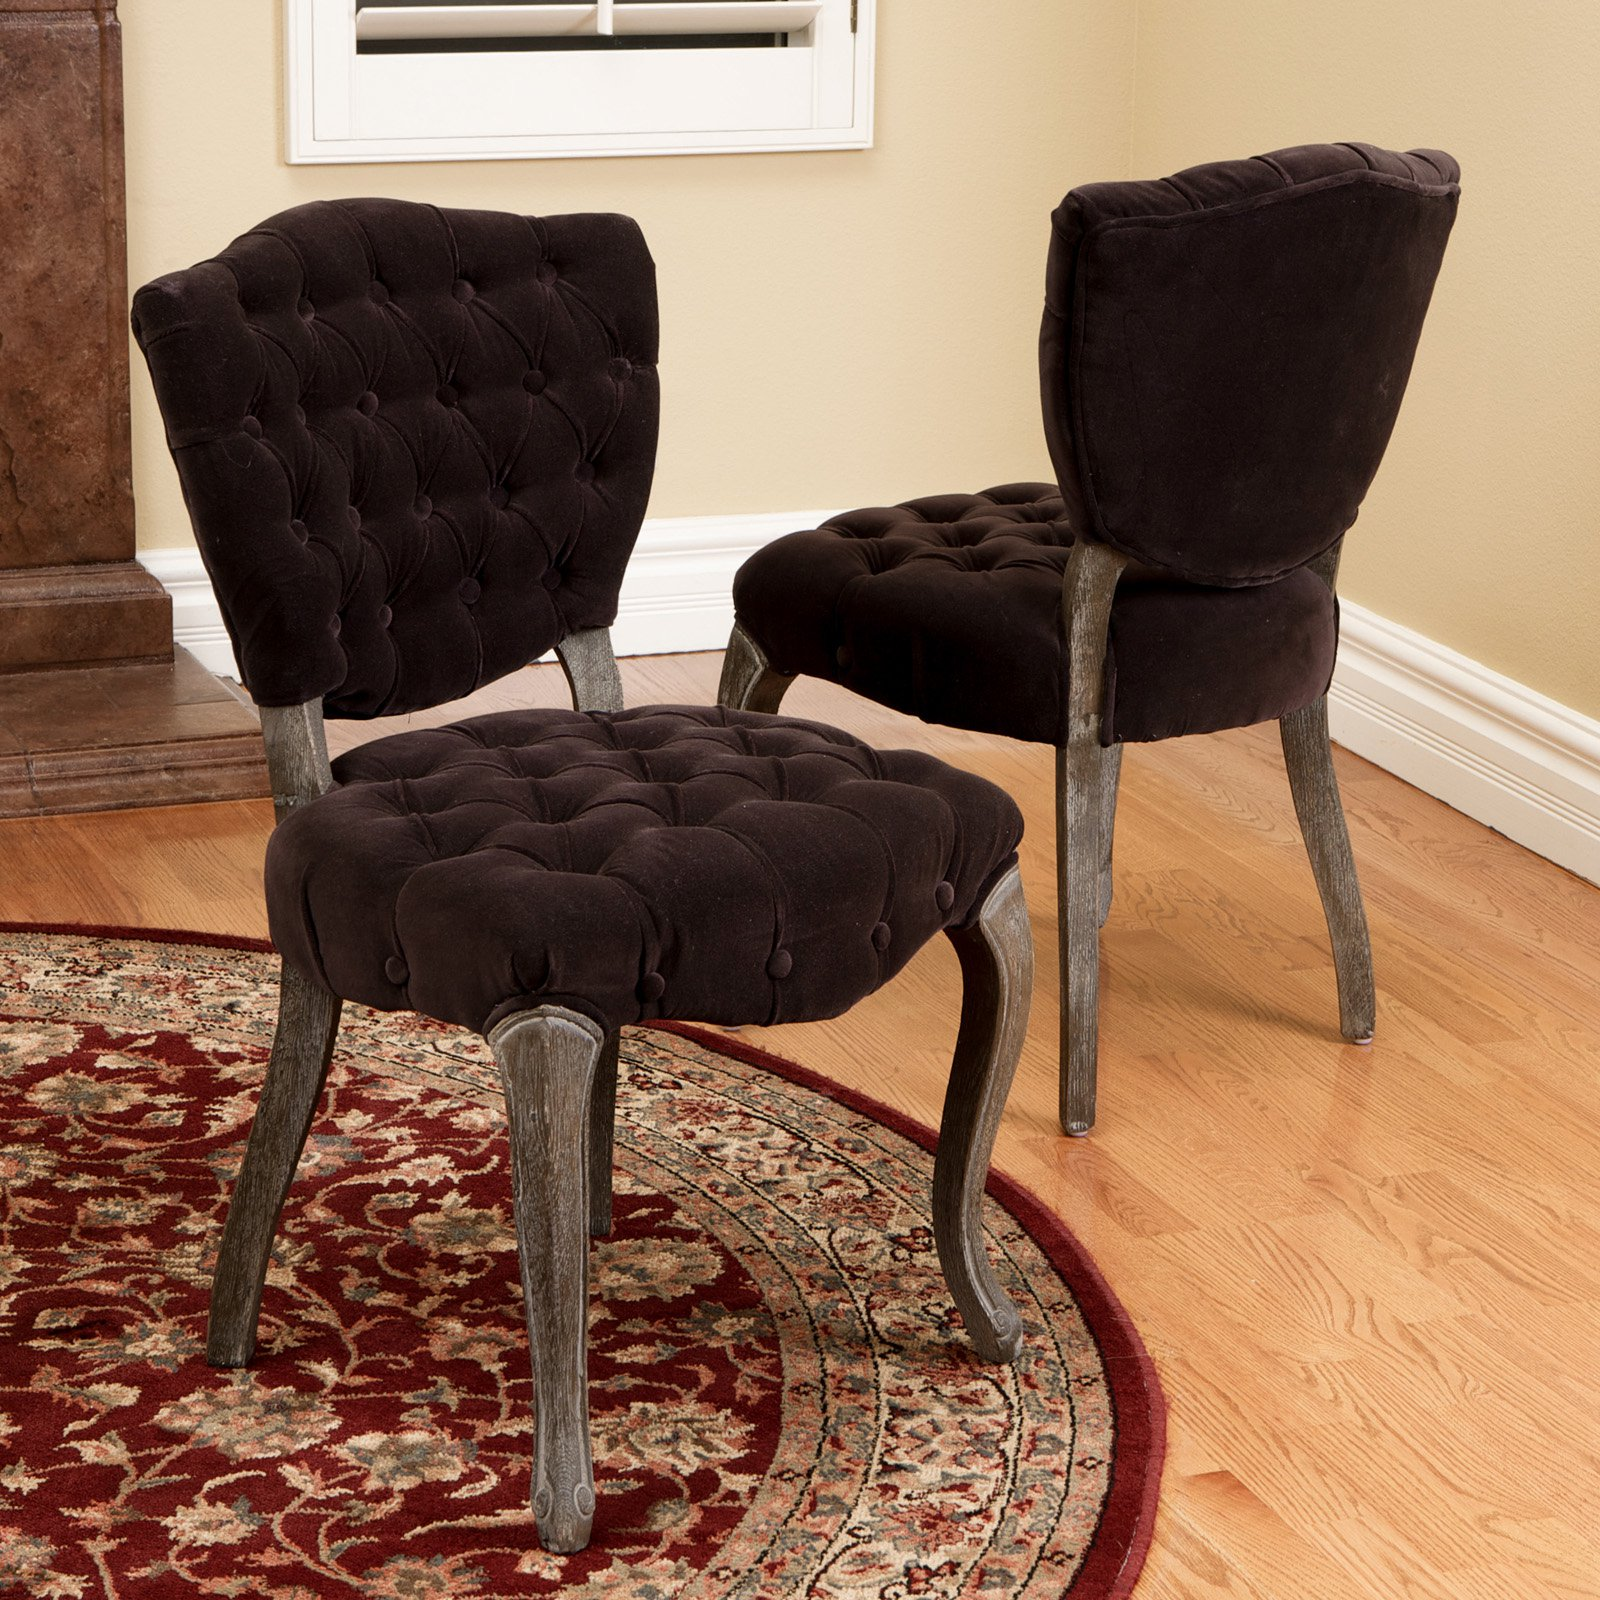 Bates Tufted Dark Chocolate Fabric Dining Chairs - 2 Pack